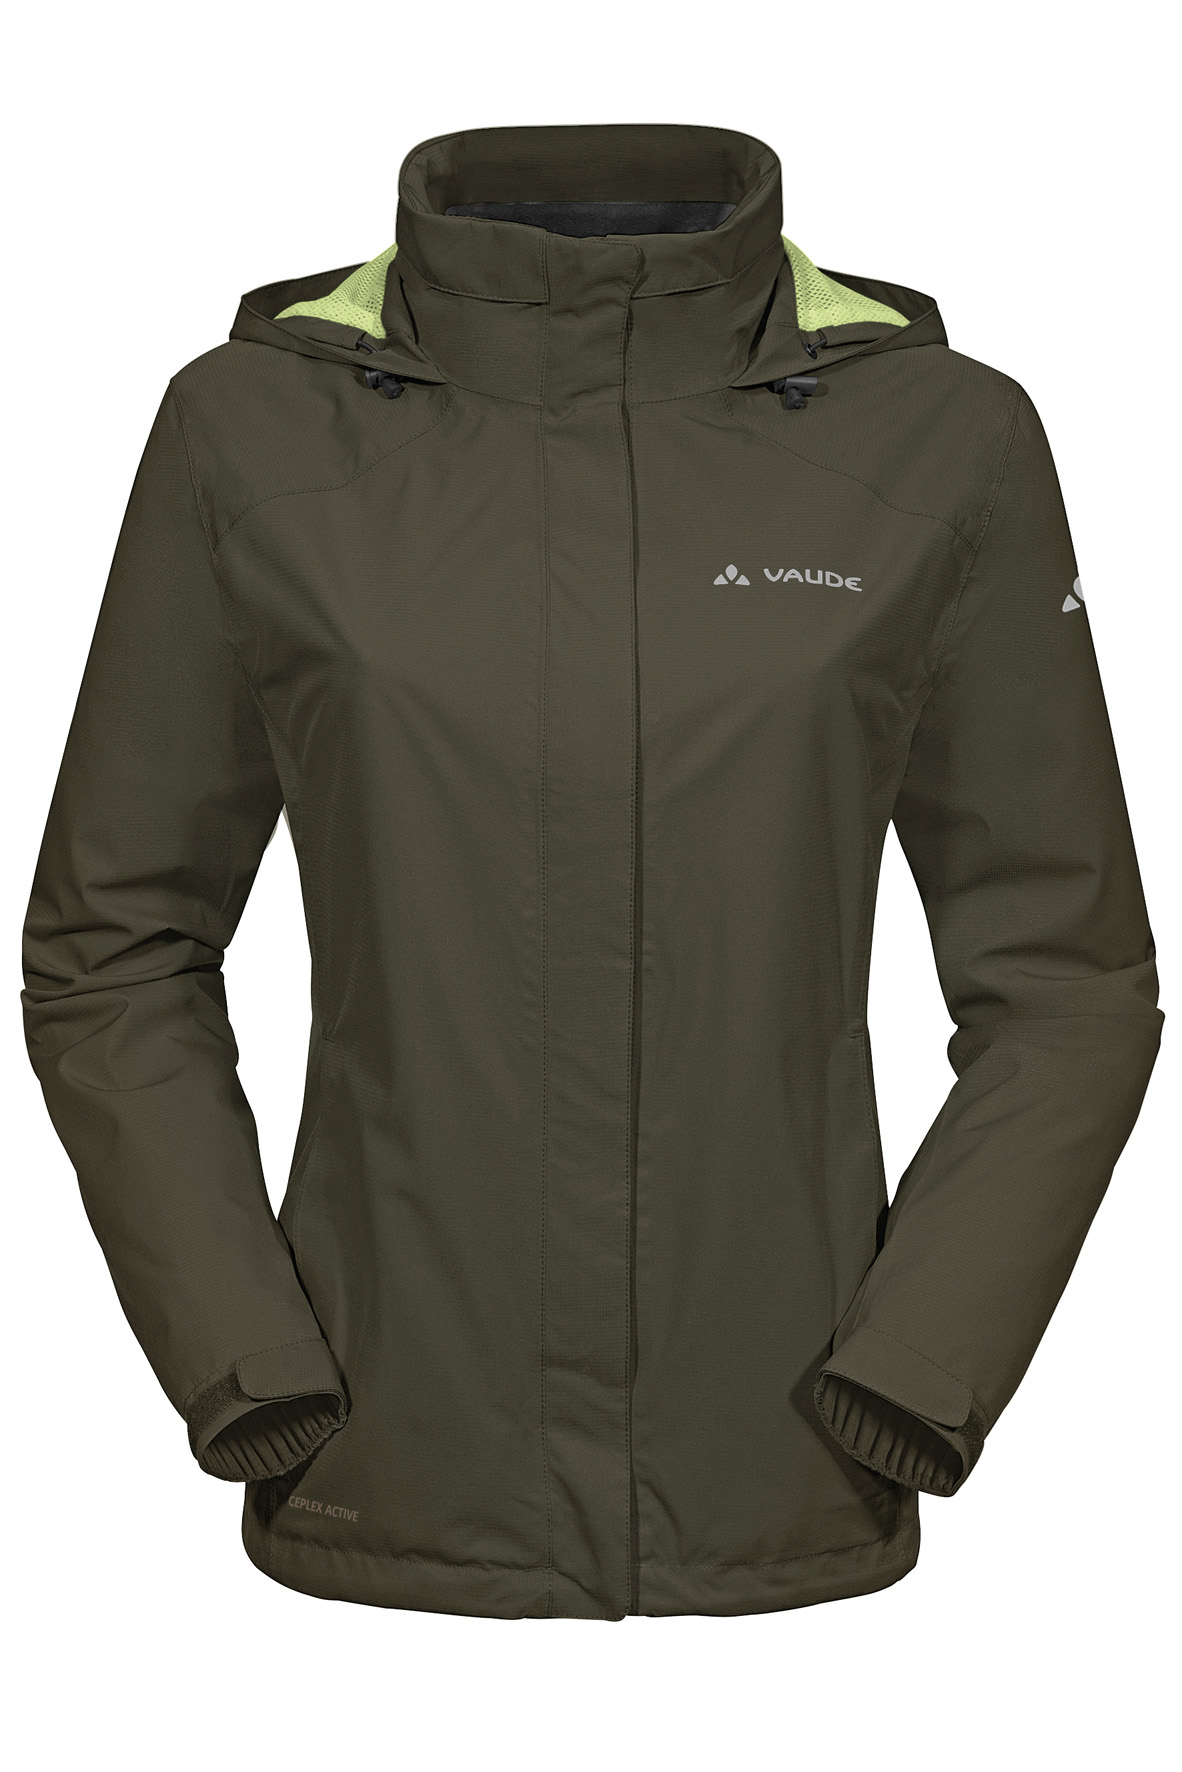 Women´s Escape Bike Light Jacket fir green Größe 36 - schneider-sports